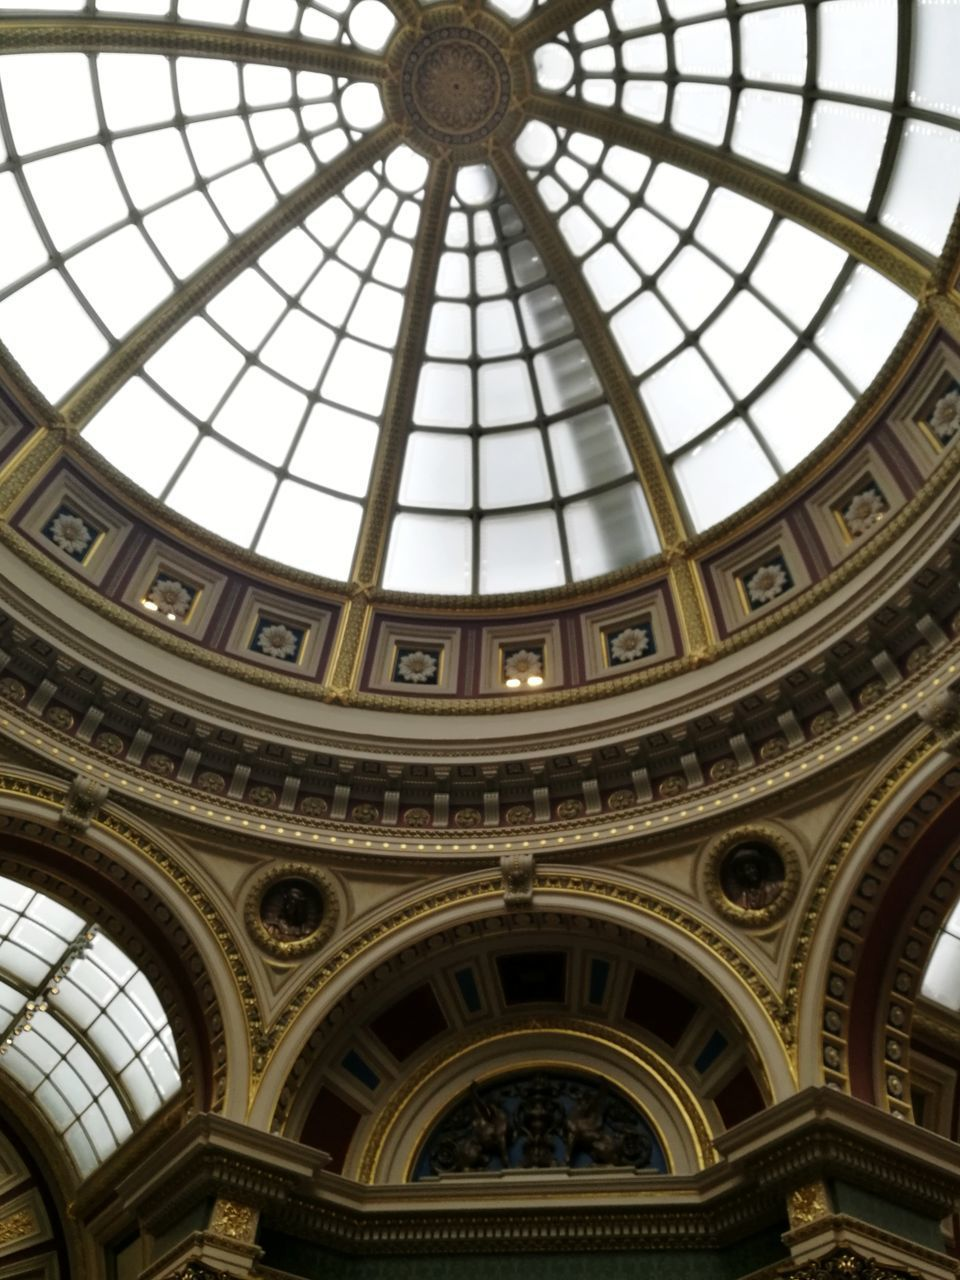 indoors, low angle view, architecture, built structure, ceiling, architectural feature, dome, no people, window, day, travel destinations, architectural design